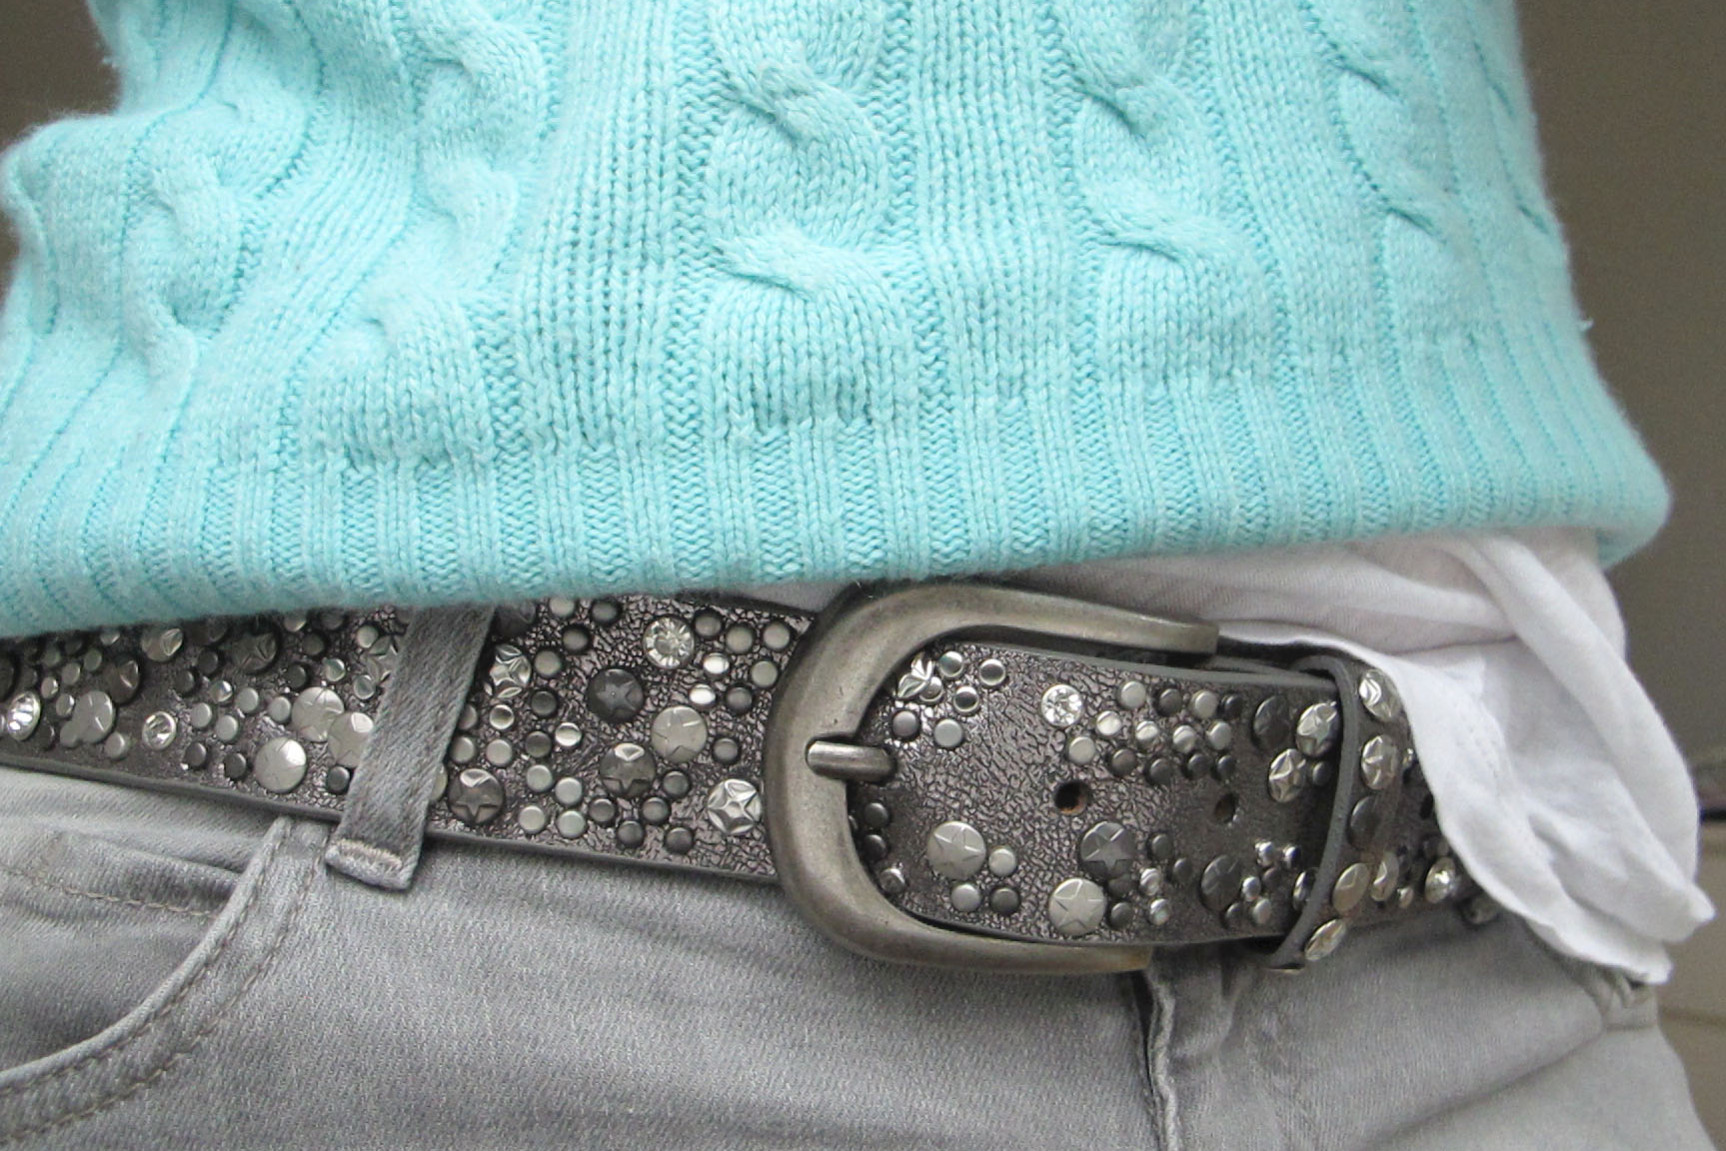 j crew, cashmere, cable knit, mint green, belt, cat & co, grey, stones, studs